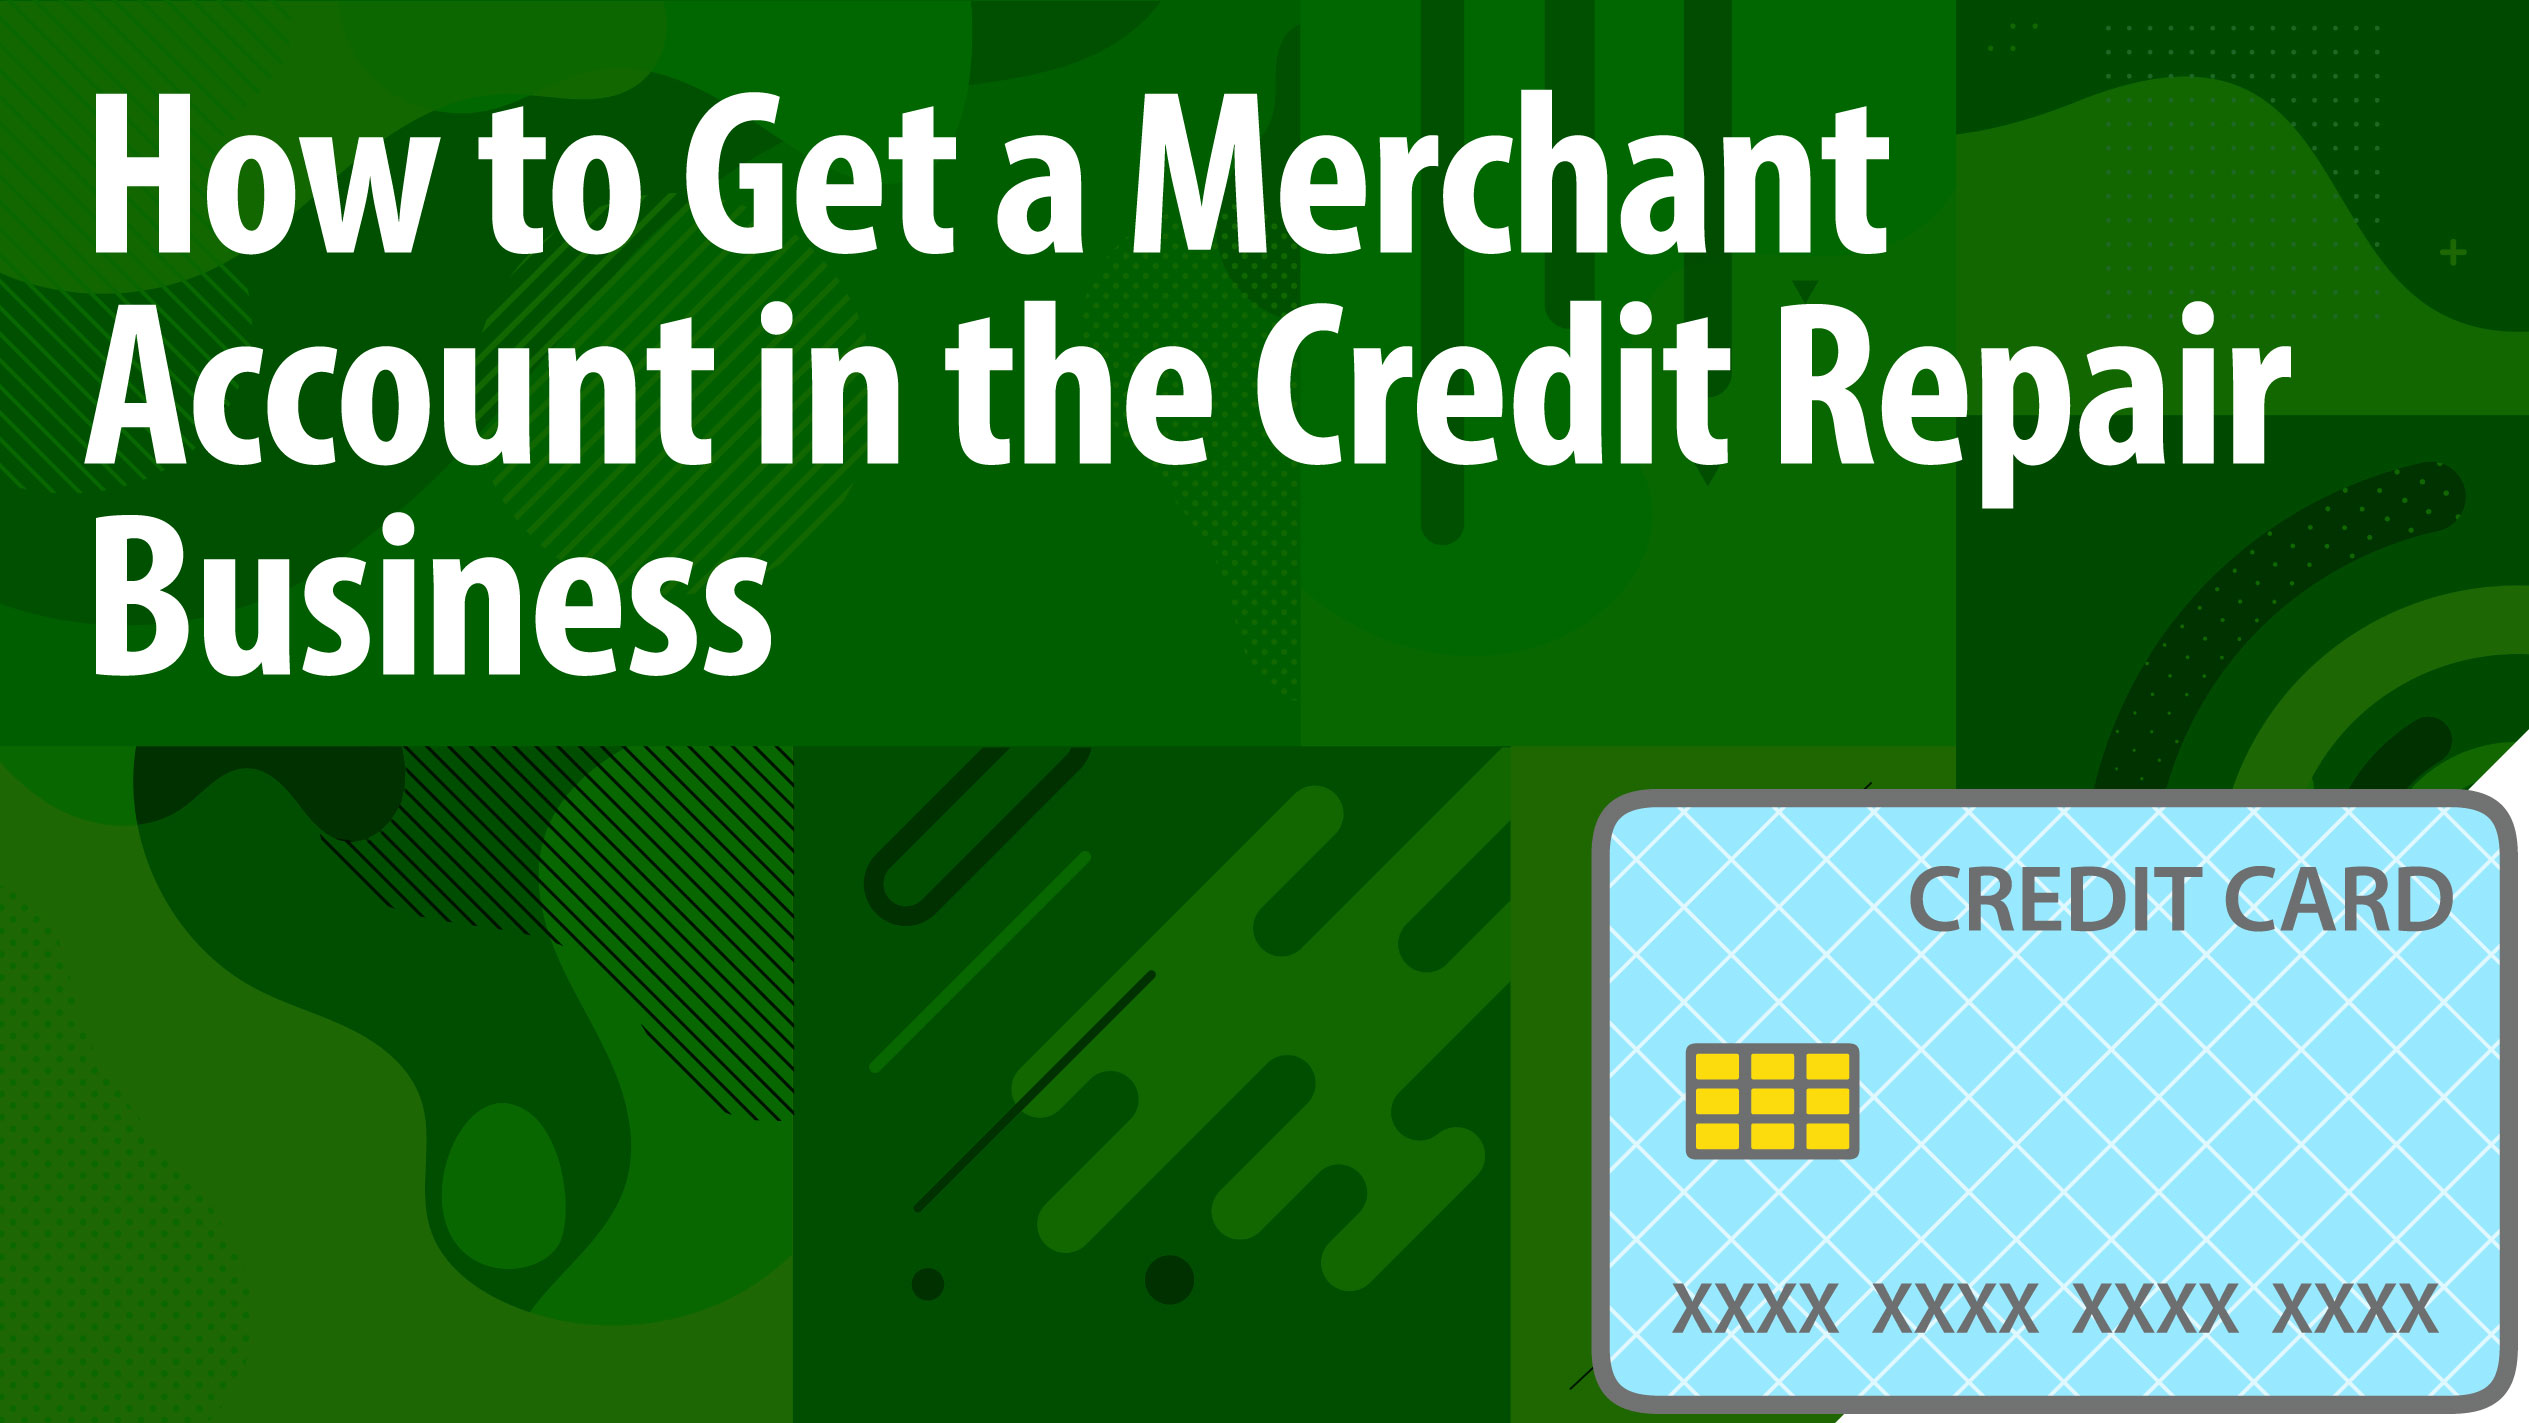 How to Get a Merchant Account in the Credit Repair Business